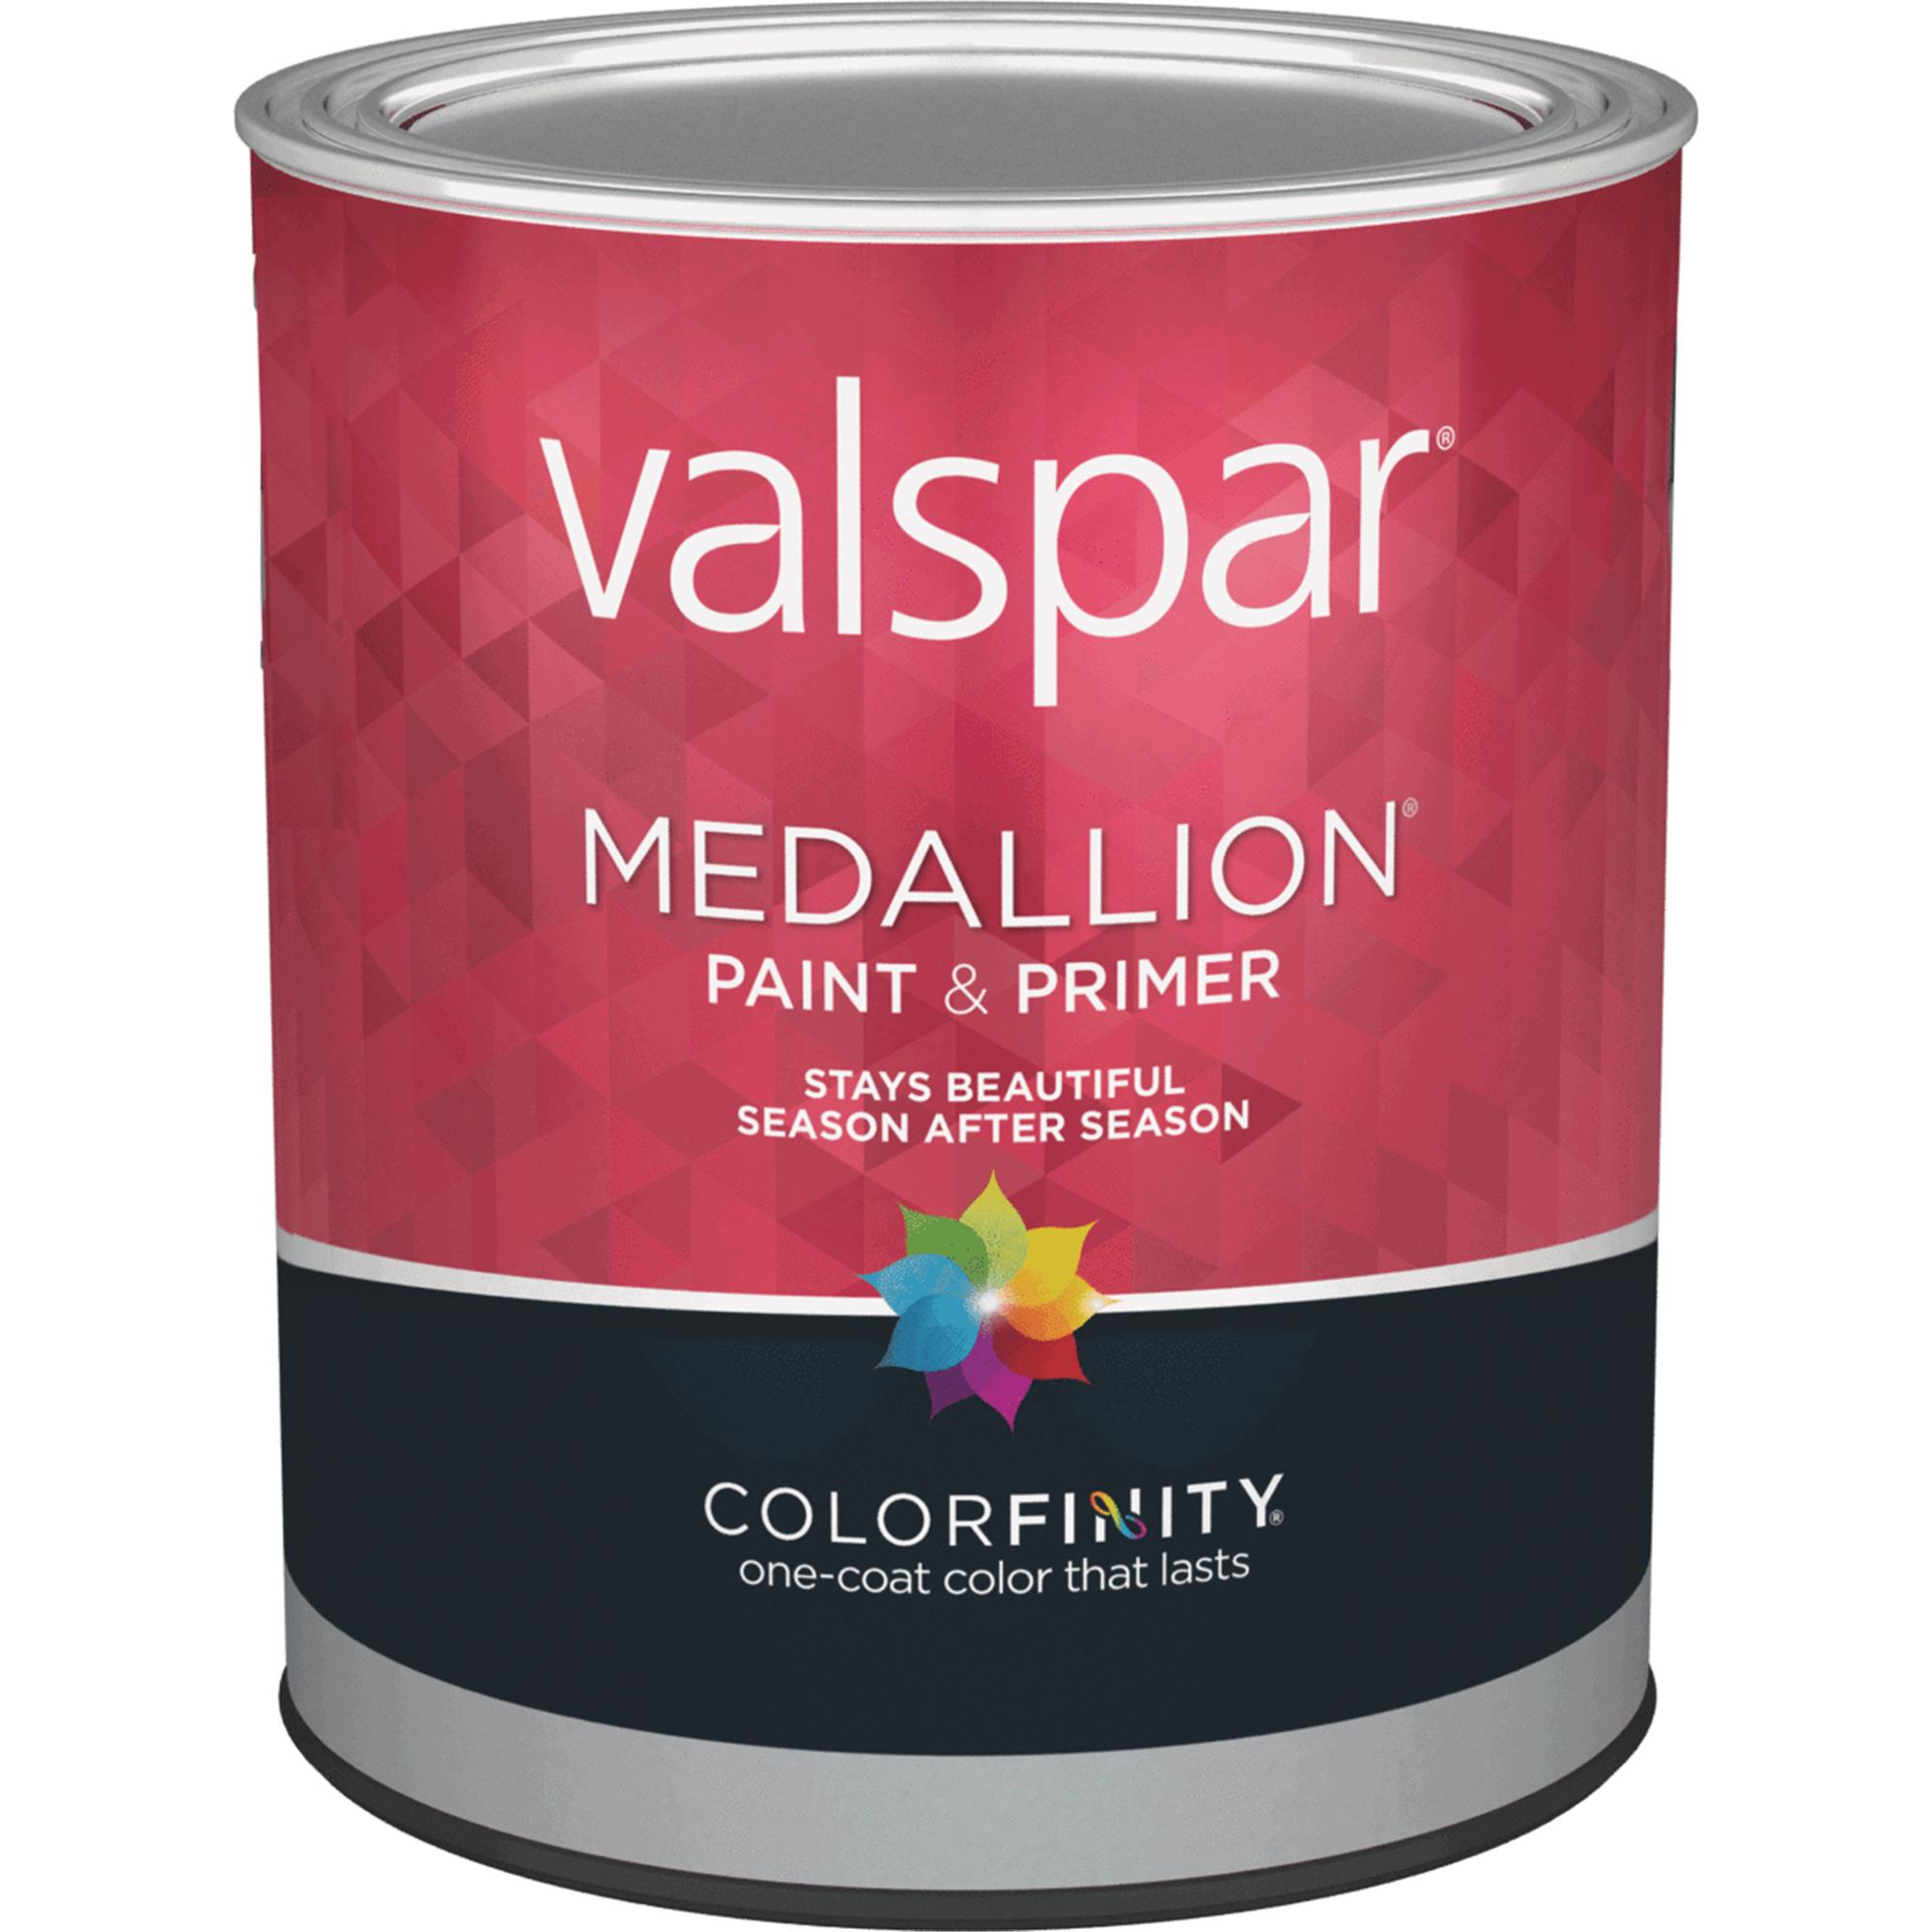 Valspar Medallion 100% Acrylic Paint & Primer Semi-Gloss Exterior House Paint